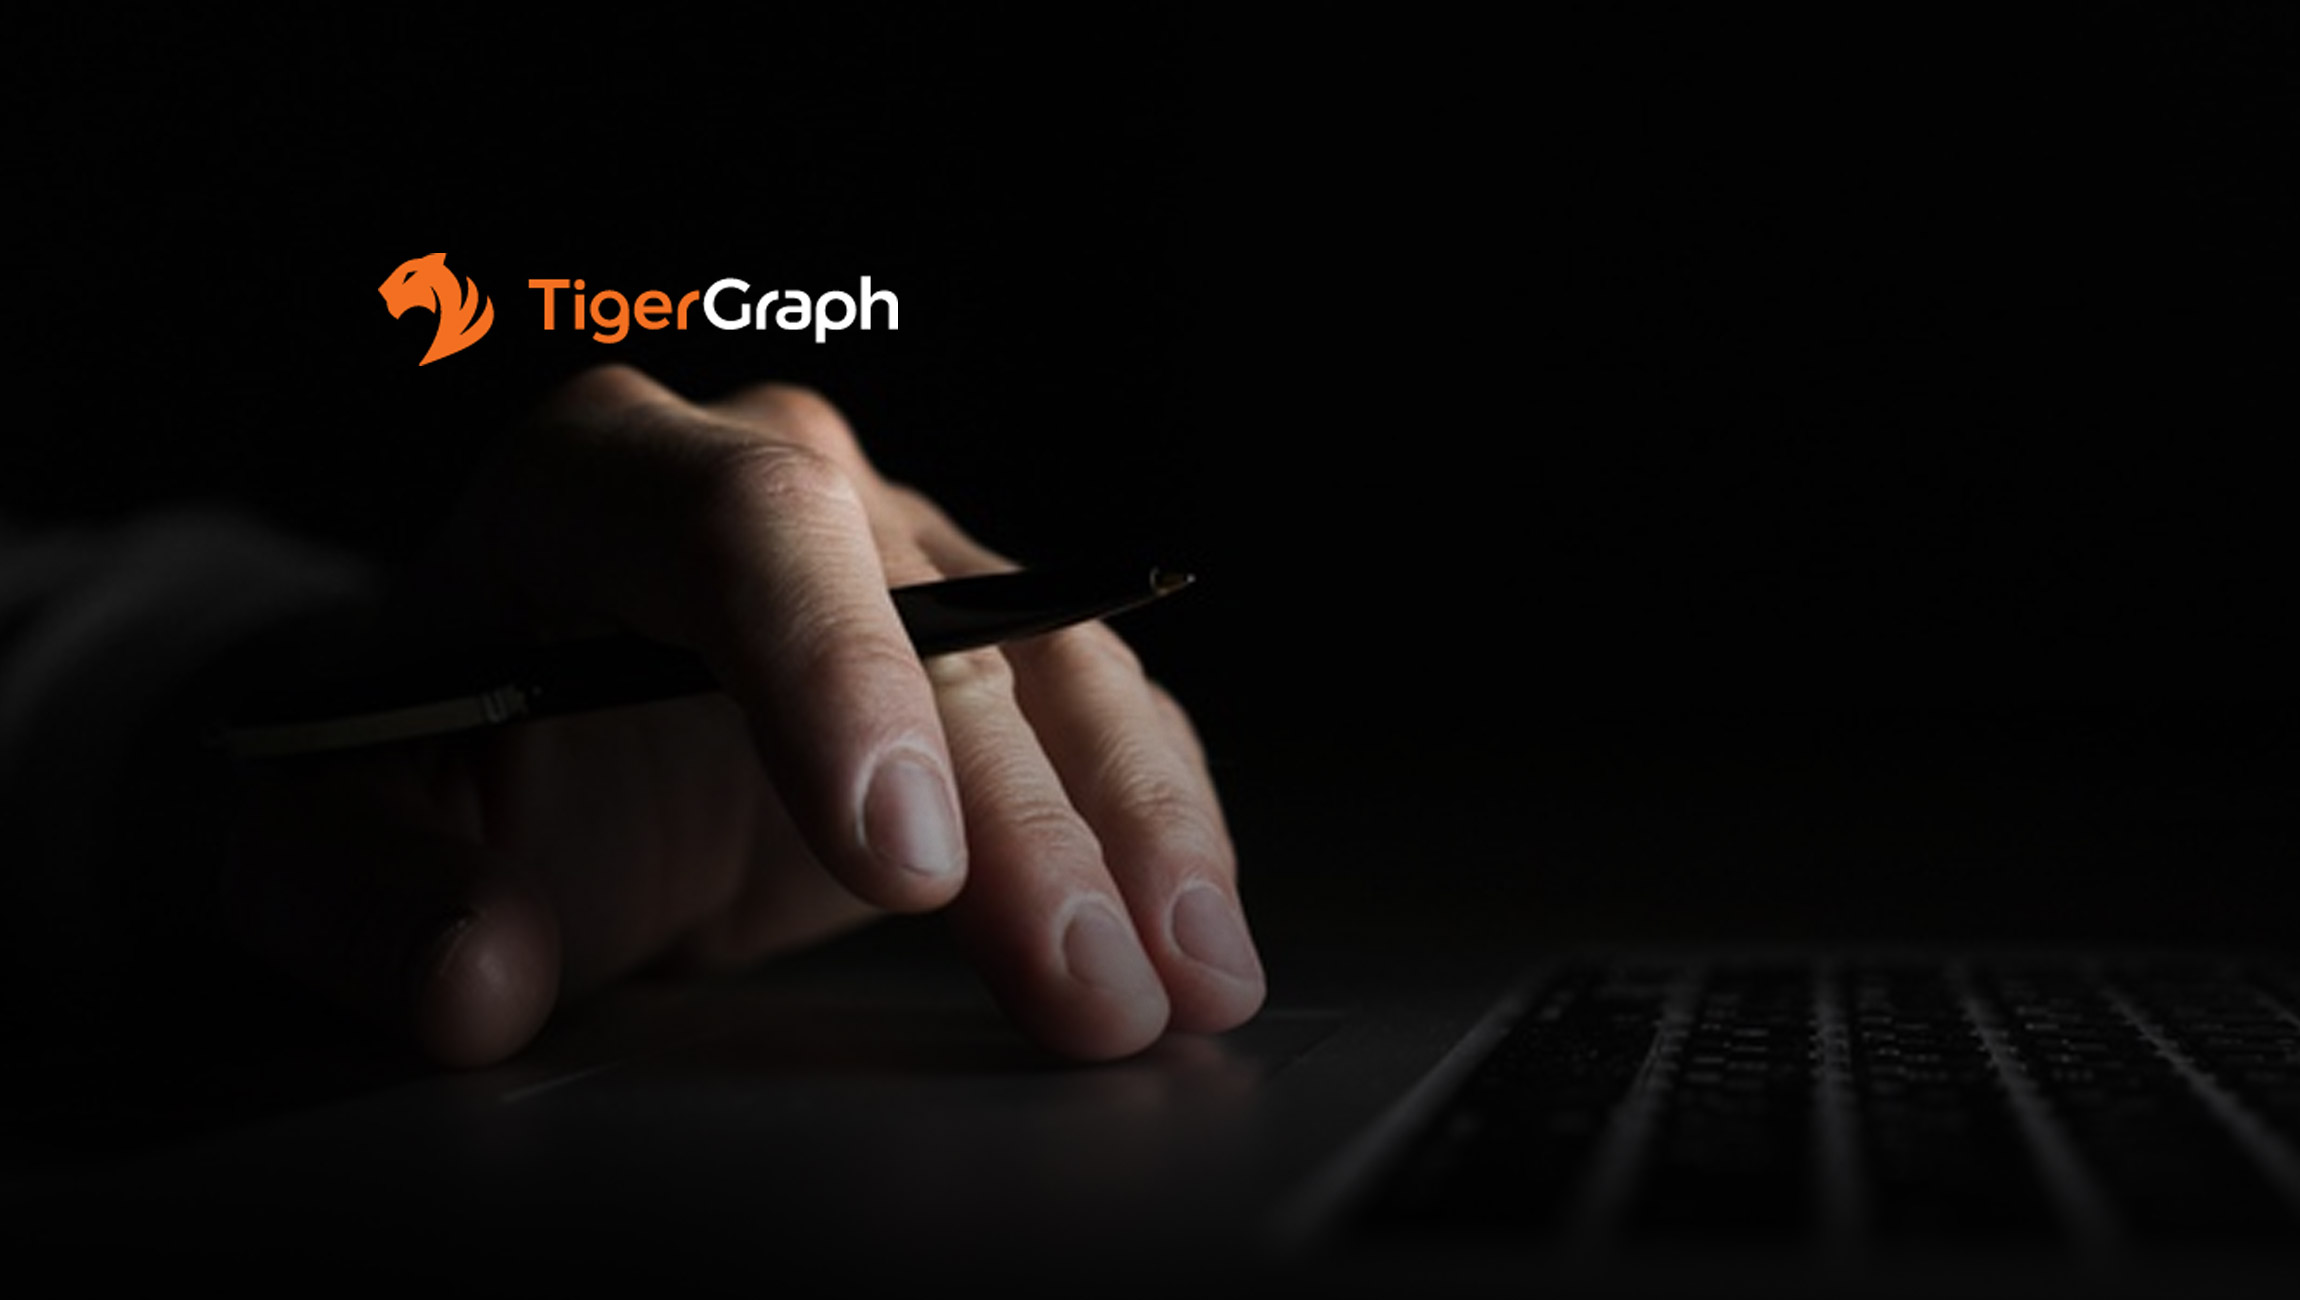 TigerGraph Demonstrates Scalability to Support Massive Data Volumes, Complex Workloads and Real-World Business Challenges